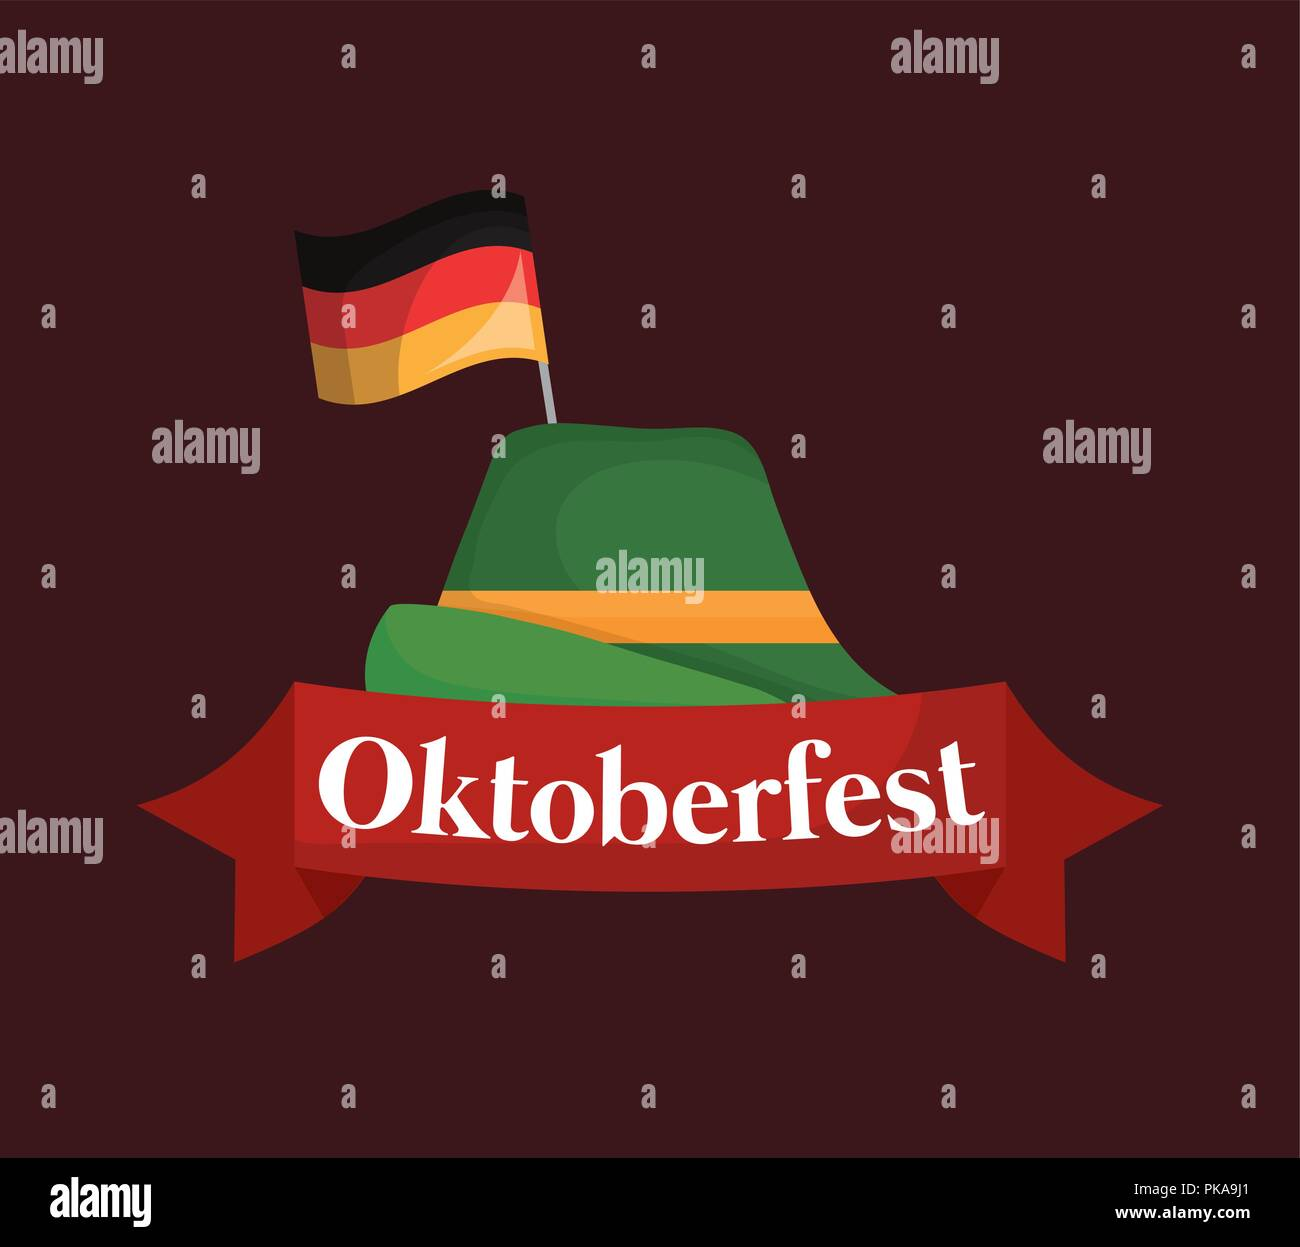 oktoberfest label with german hat vector illustration design - Stock Image